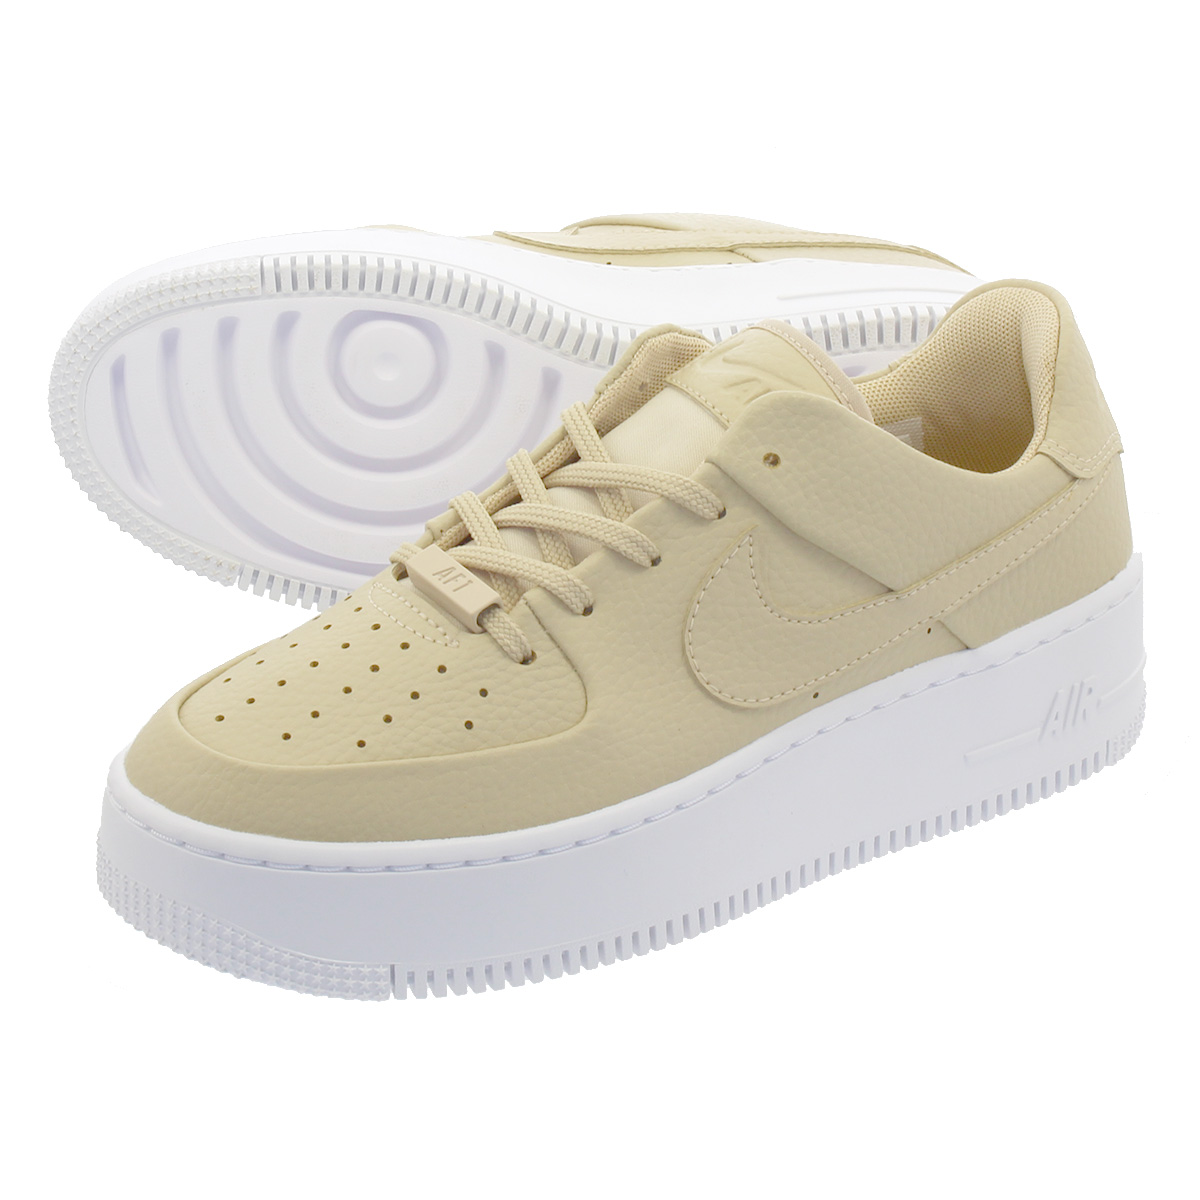 buy online f41f9 2196d NIKE WMNS AIR FORCE 1 SAGE LOW Nike women air force 1 sage low PARTICLE  BEIGE/PARTICLE BEIGE ar5339-202